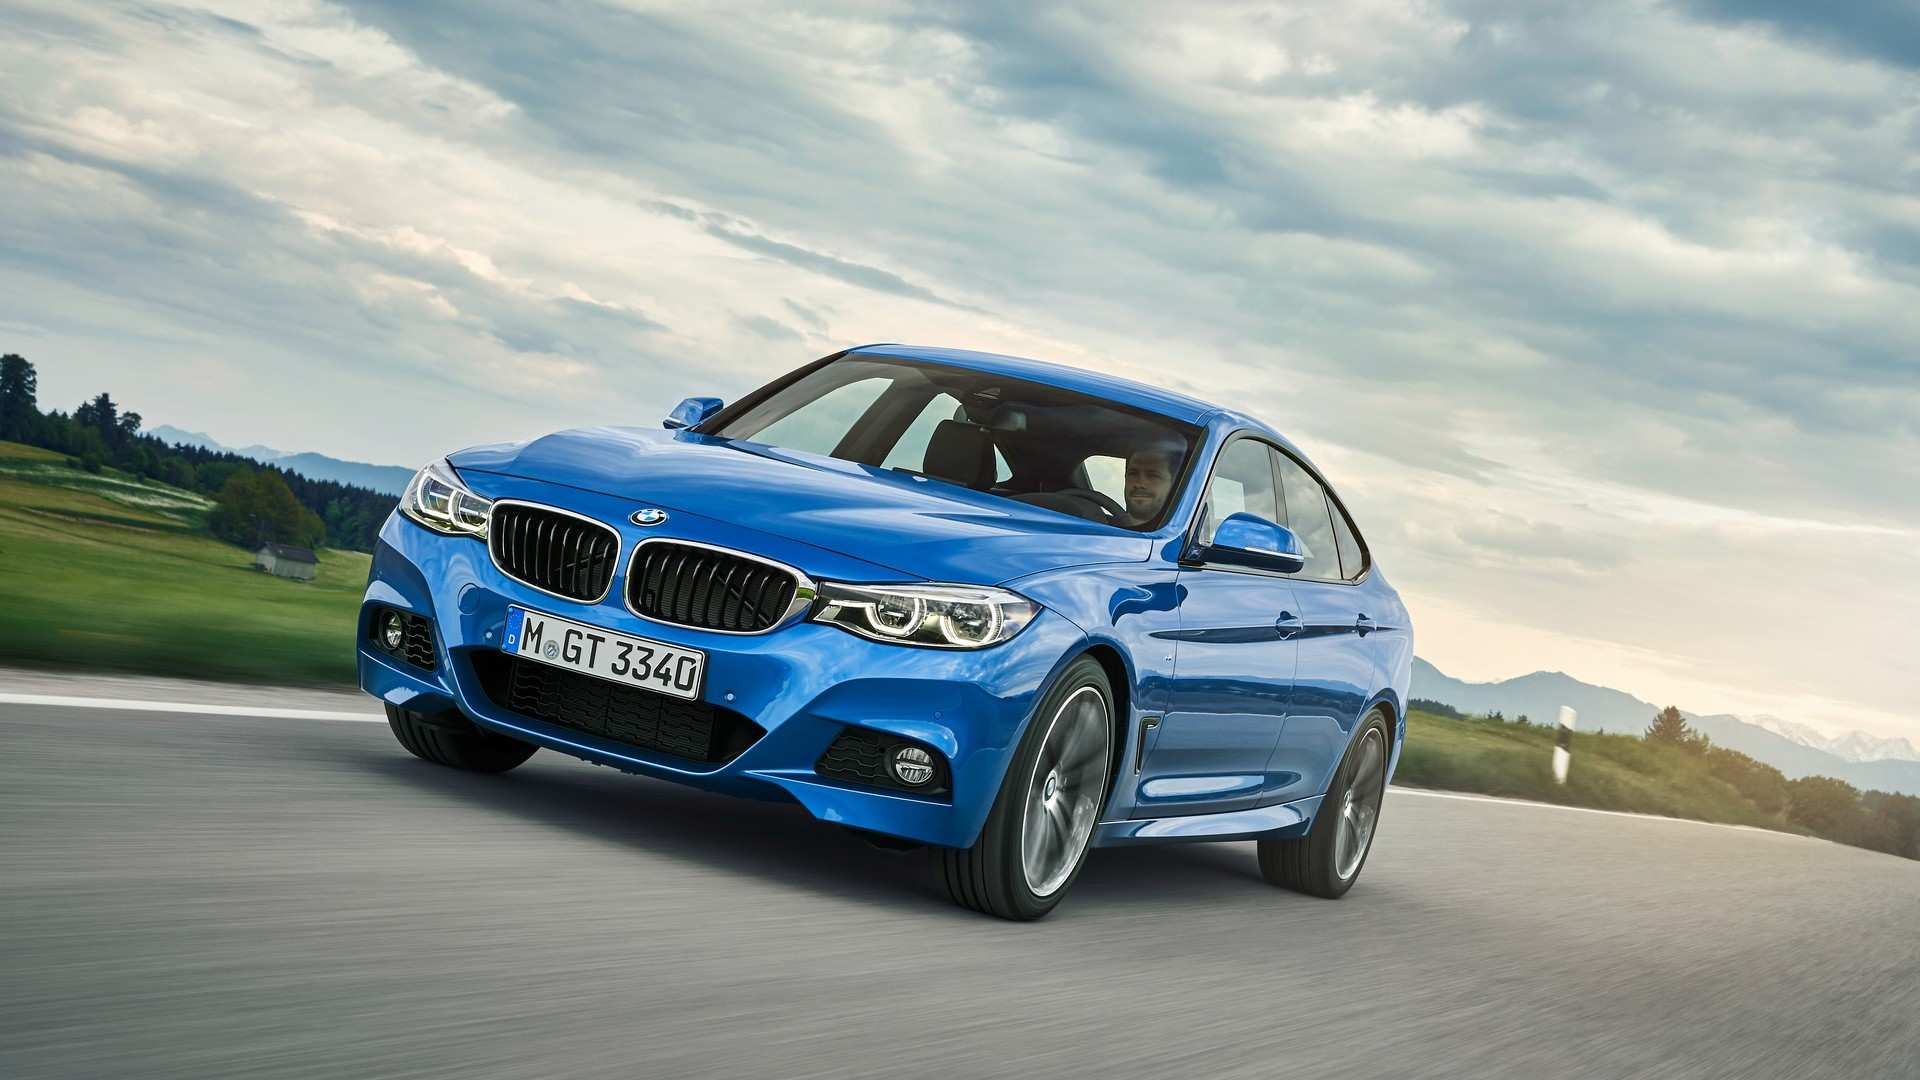 65 All New BMW Gt 2020 Reviews for BMW Gt 2020